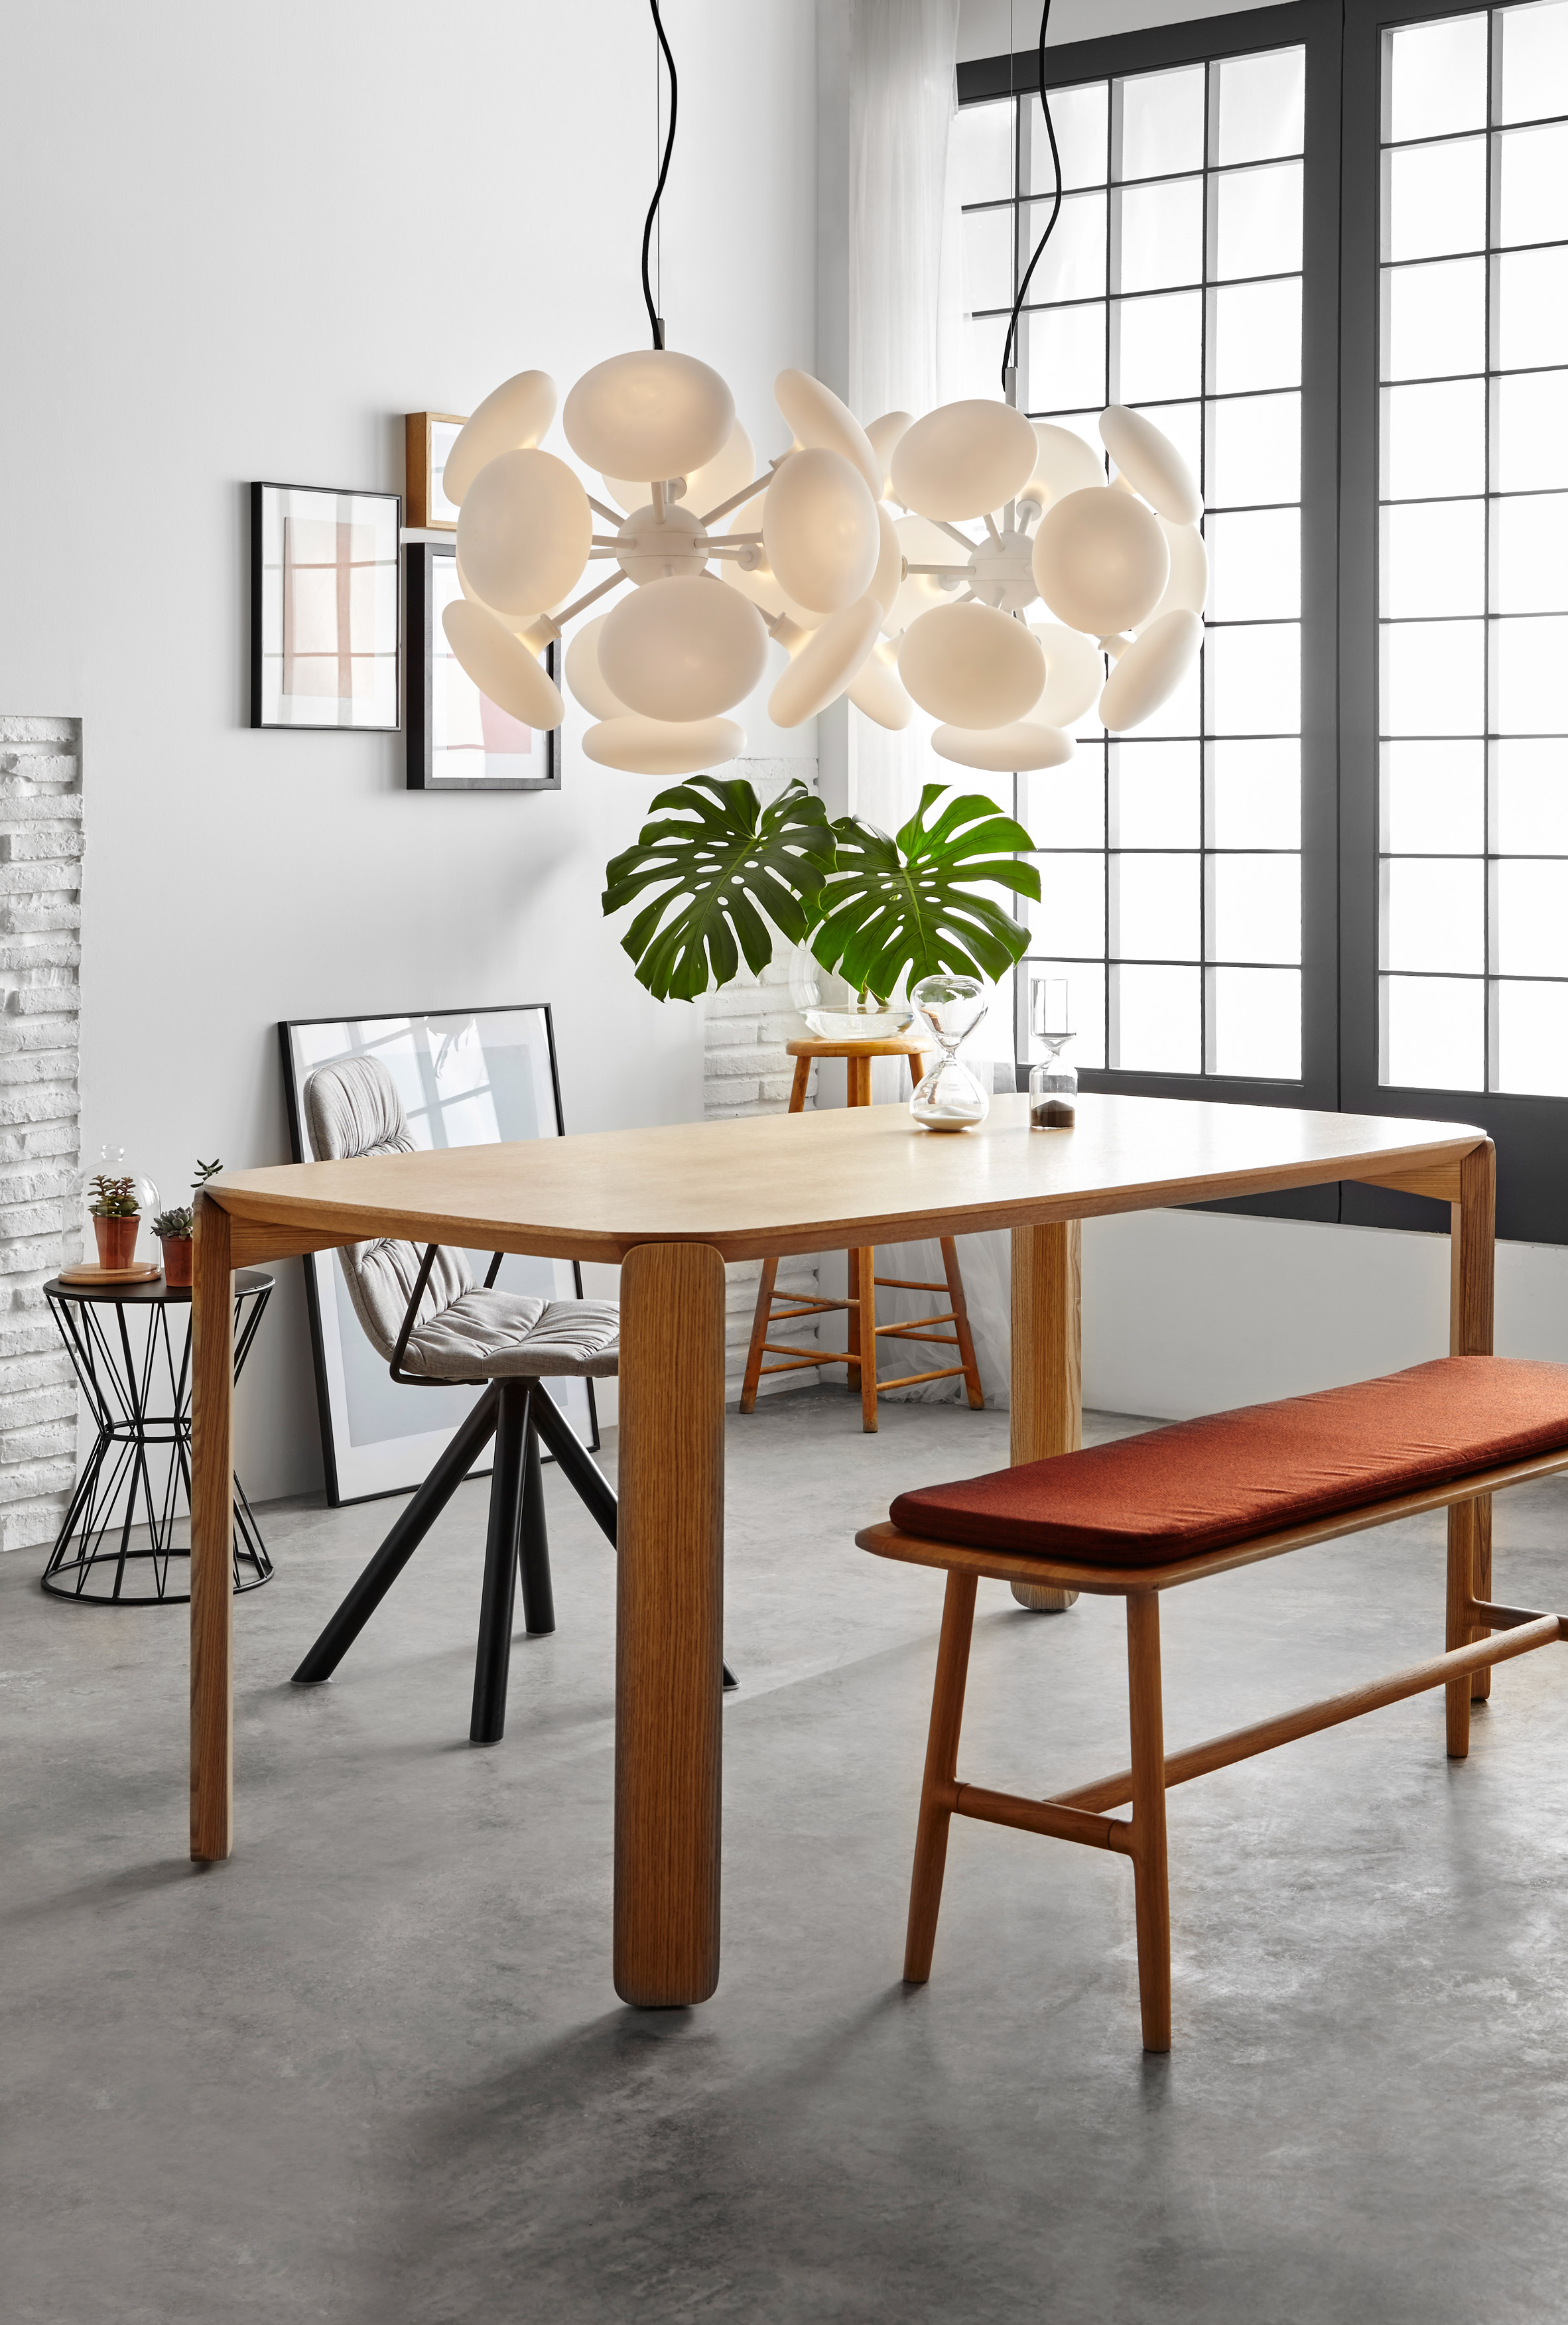 LaSelva's 45 table system has more than 100 different combinations